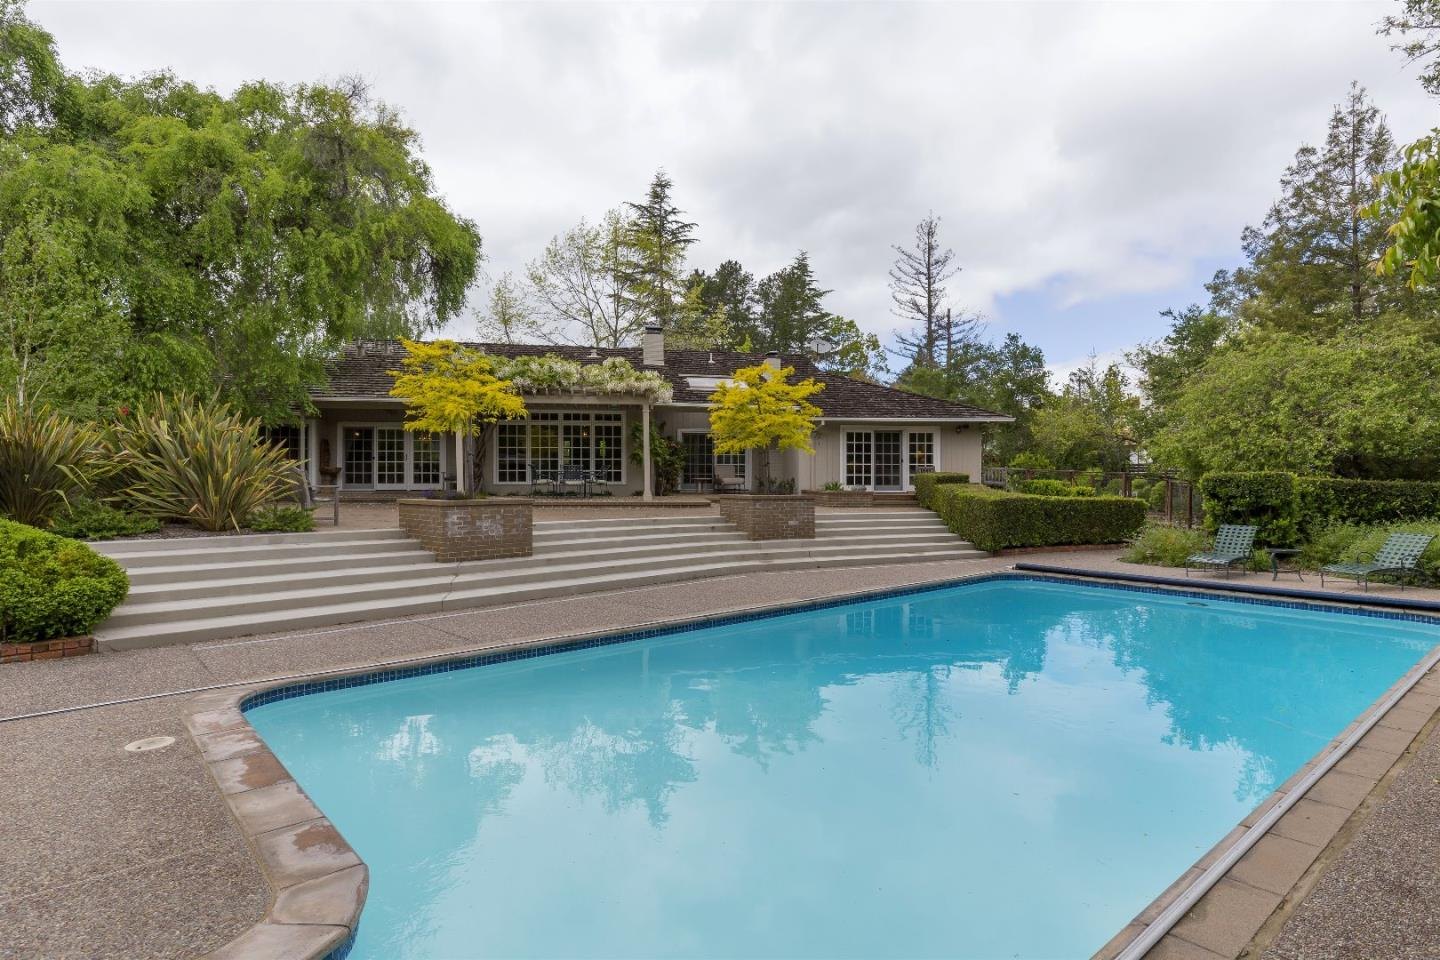 Additional photo for property listing at 331 Fletcher Dr  ATHERTON, CALIFORNIA 94027